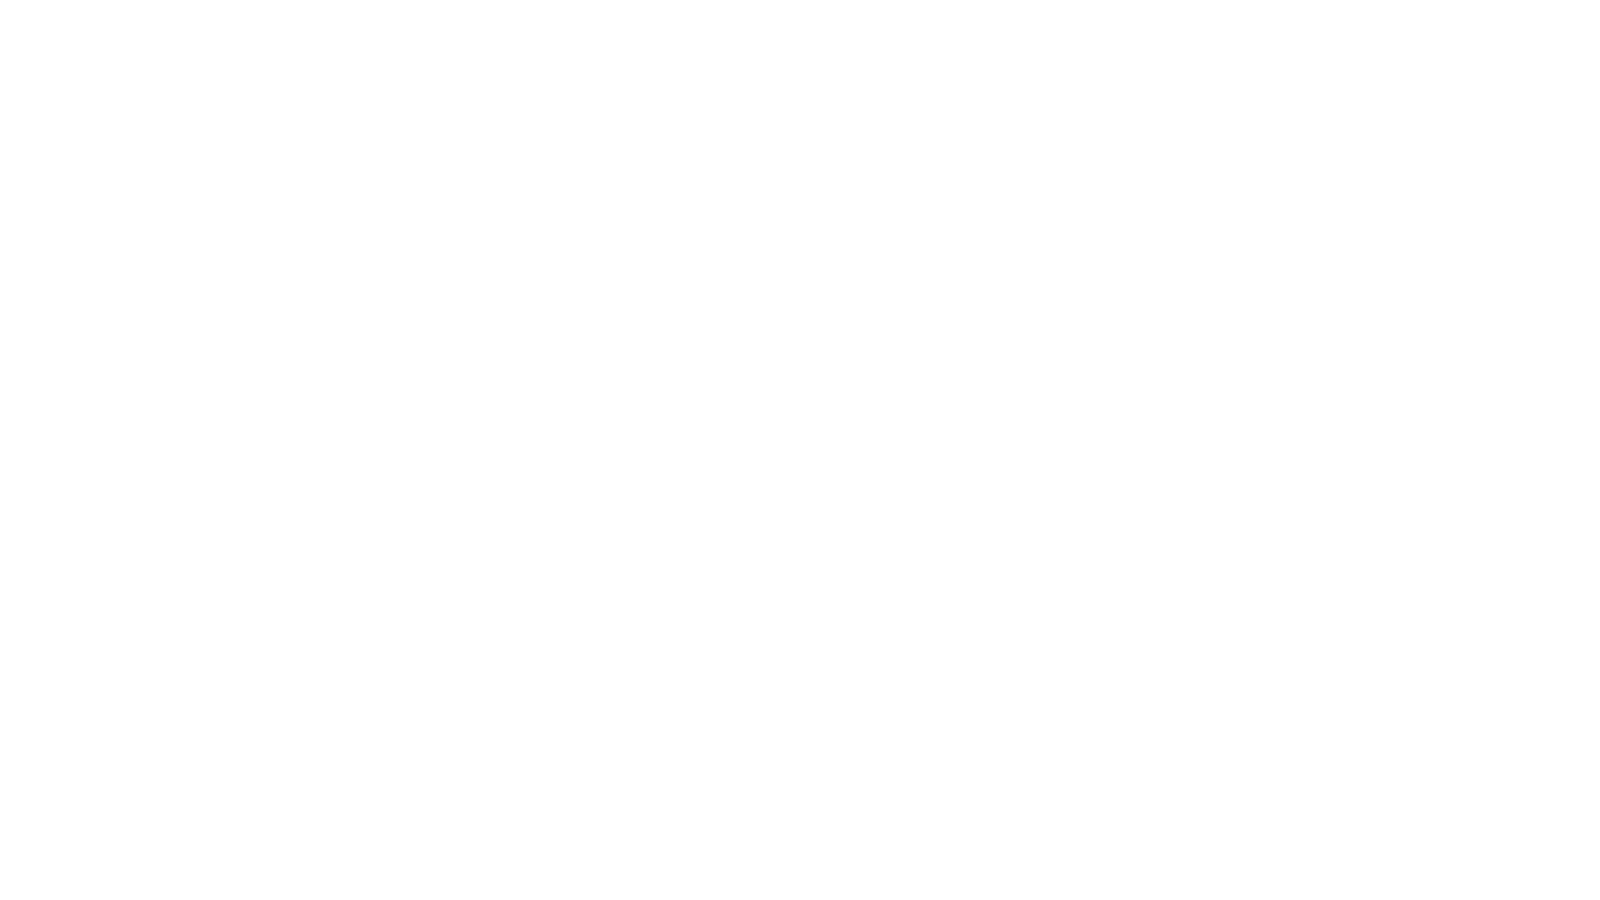 Embody Gaming Chair illustration featuring height and width specifications on a black background.